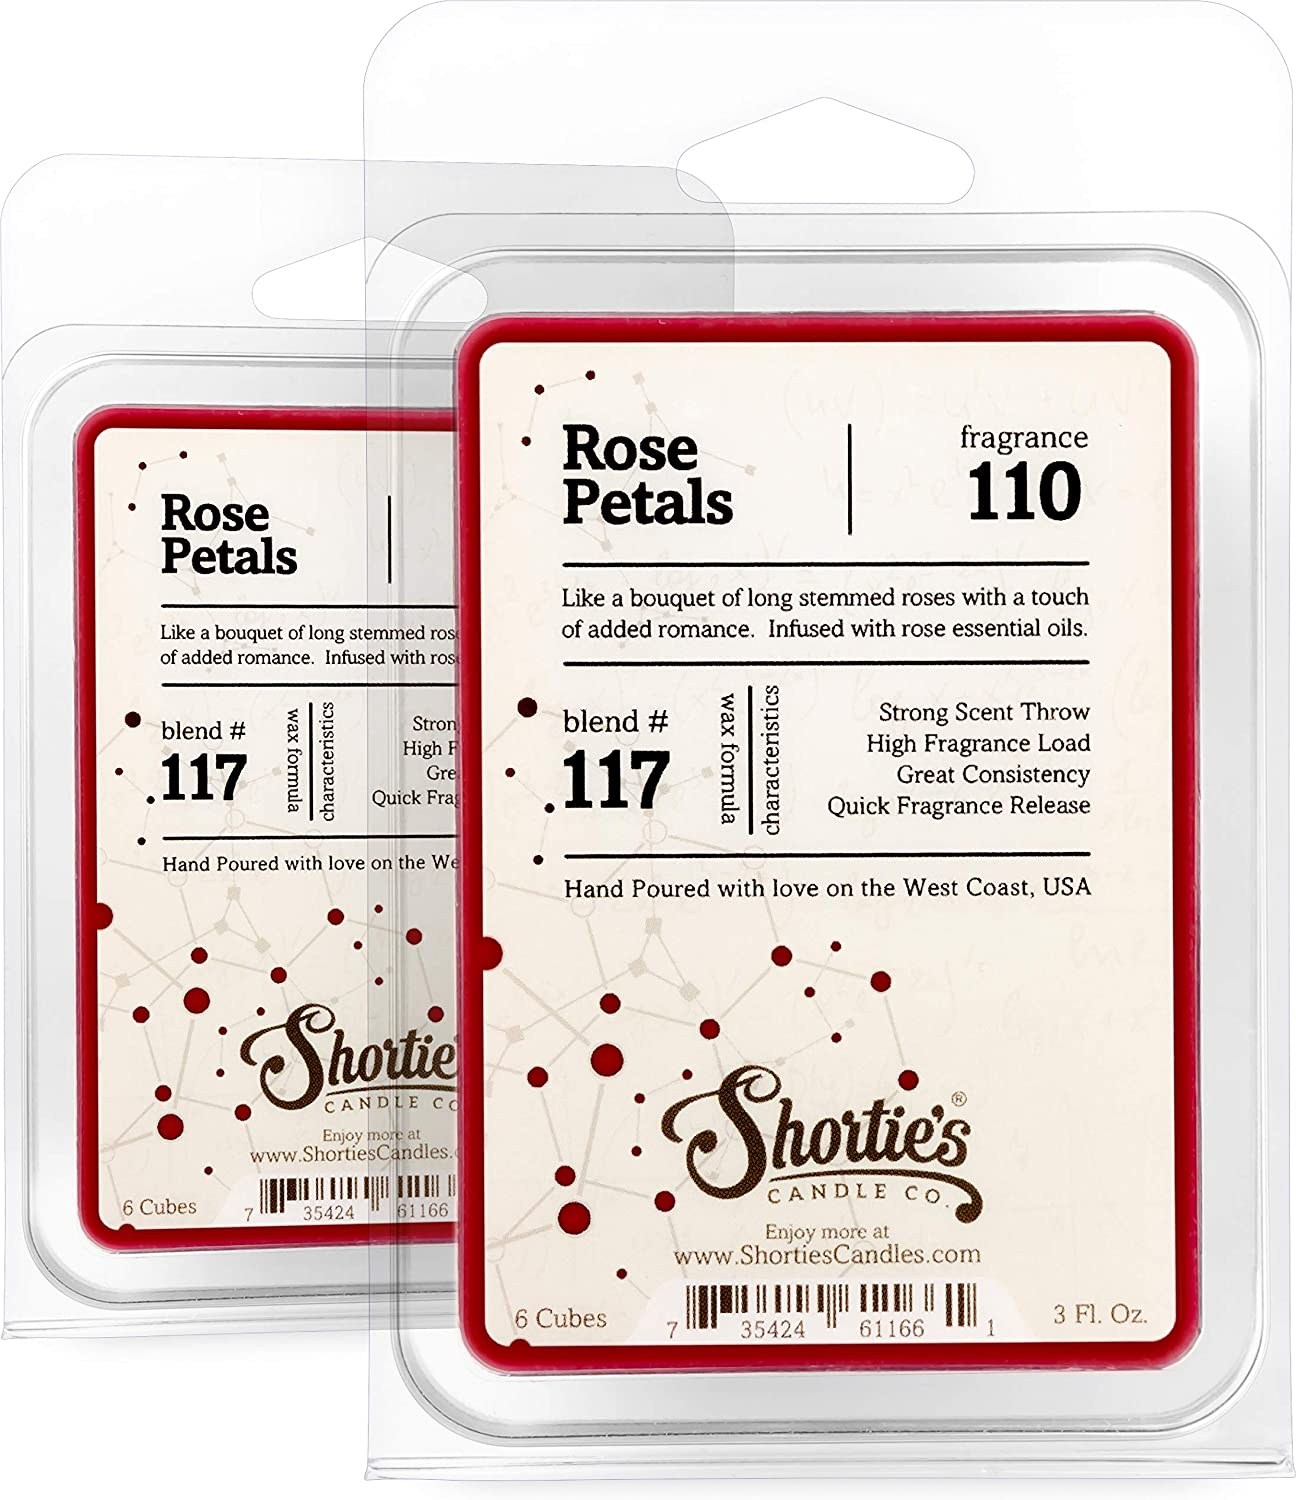 Shortie's Candle Company Rose Petals Wax Melts Multi Pack - Formula 117-2 Highly Scented Bars - Made with Natural Oils - Flower & Floral Air Freshener Cubes Collection